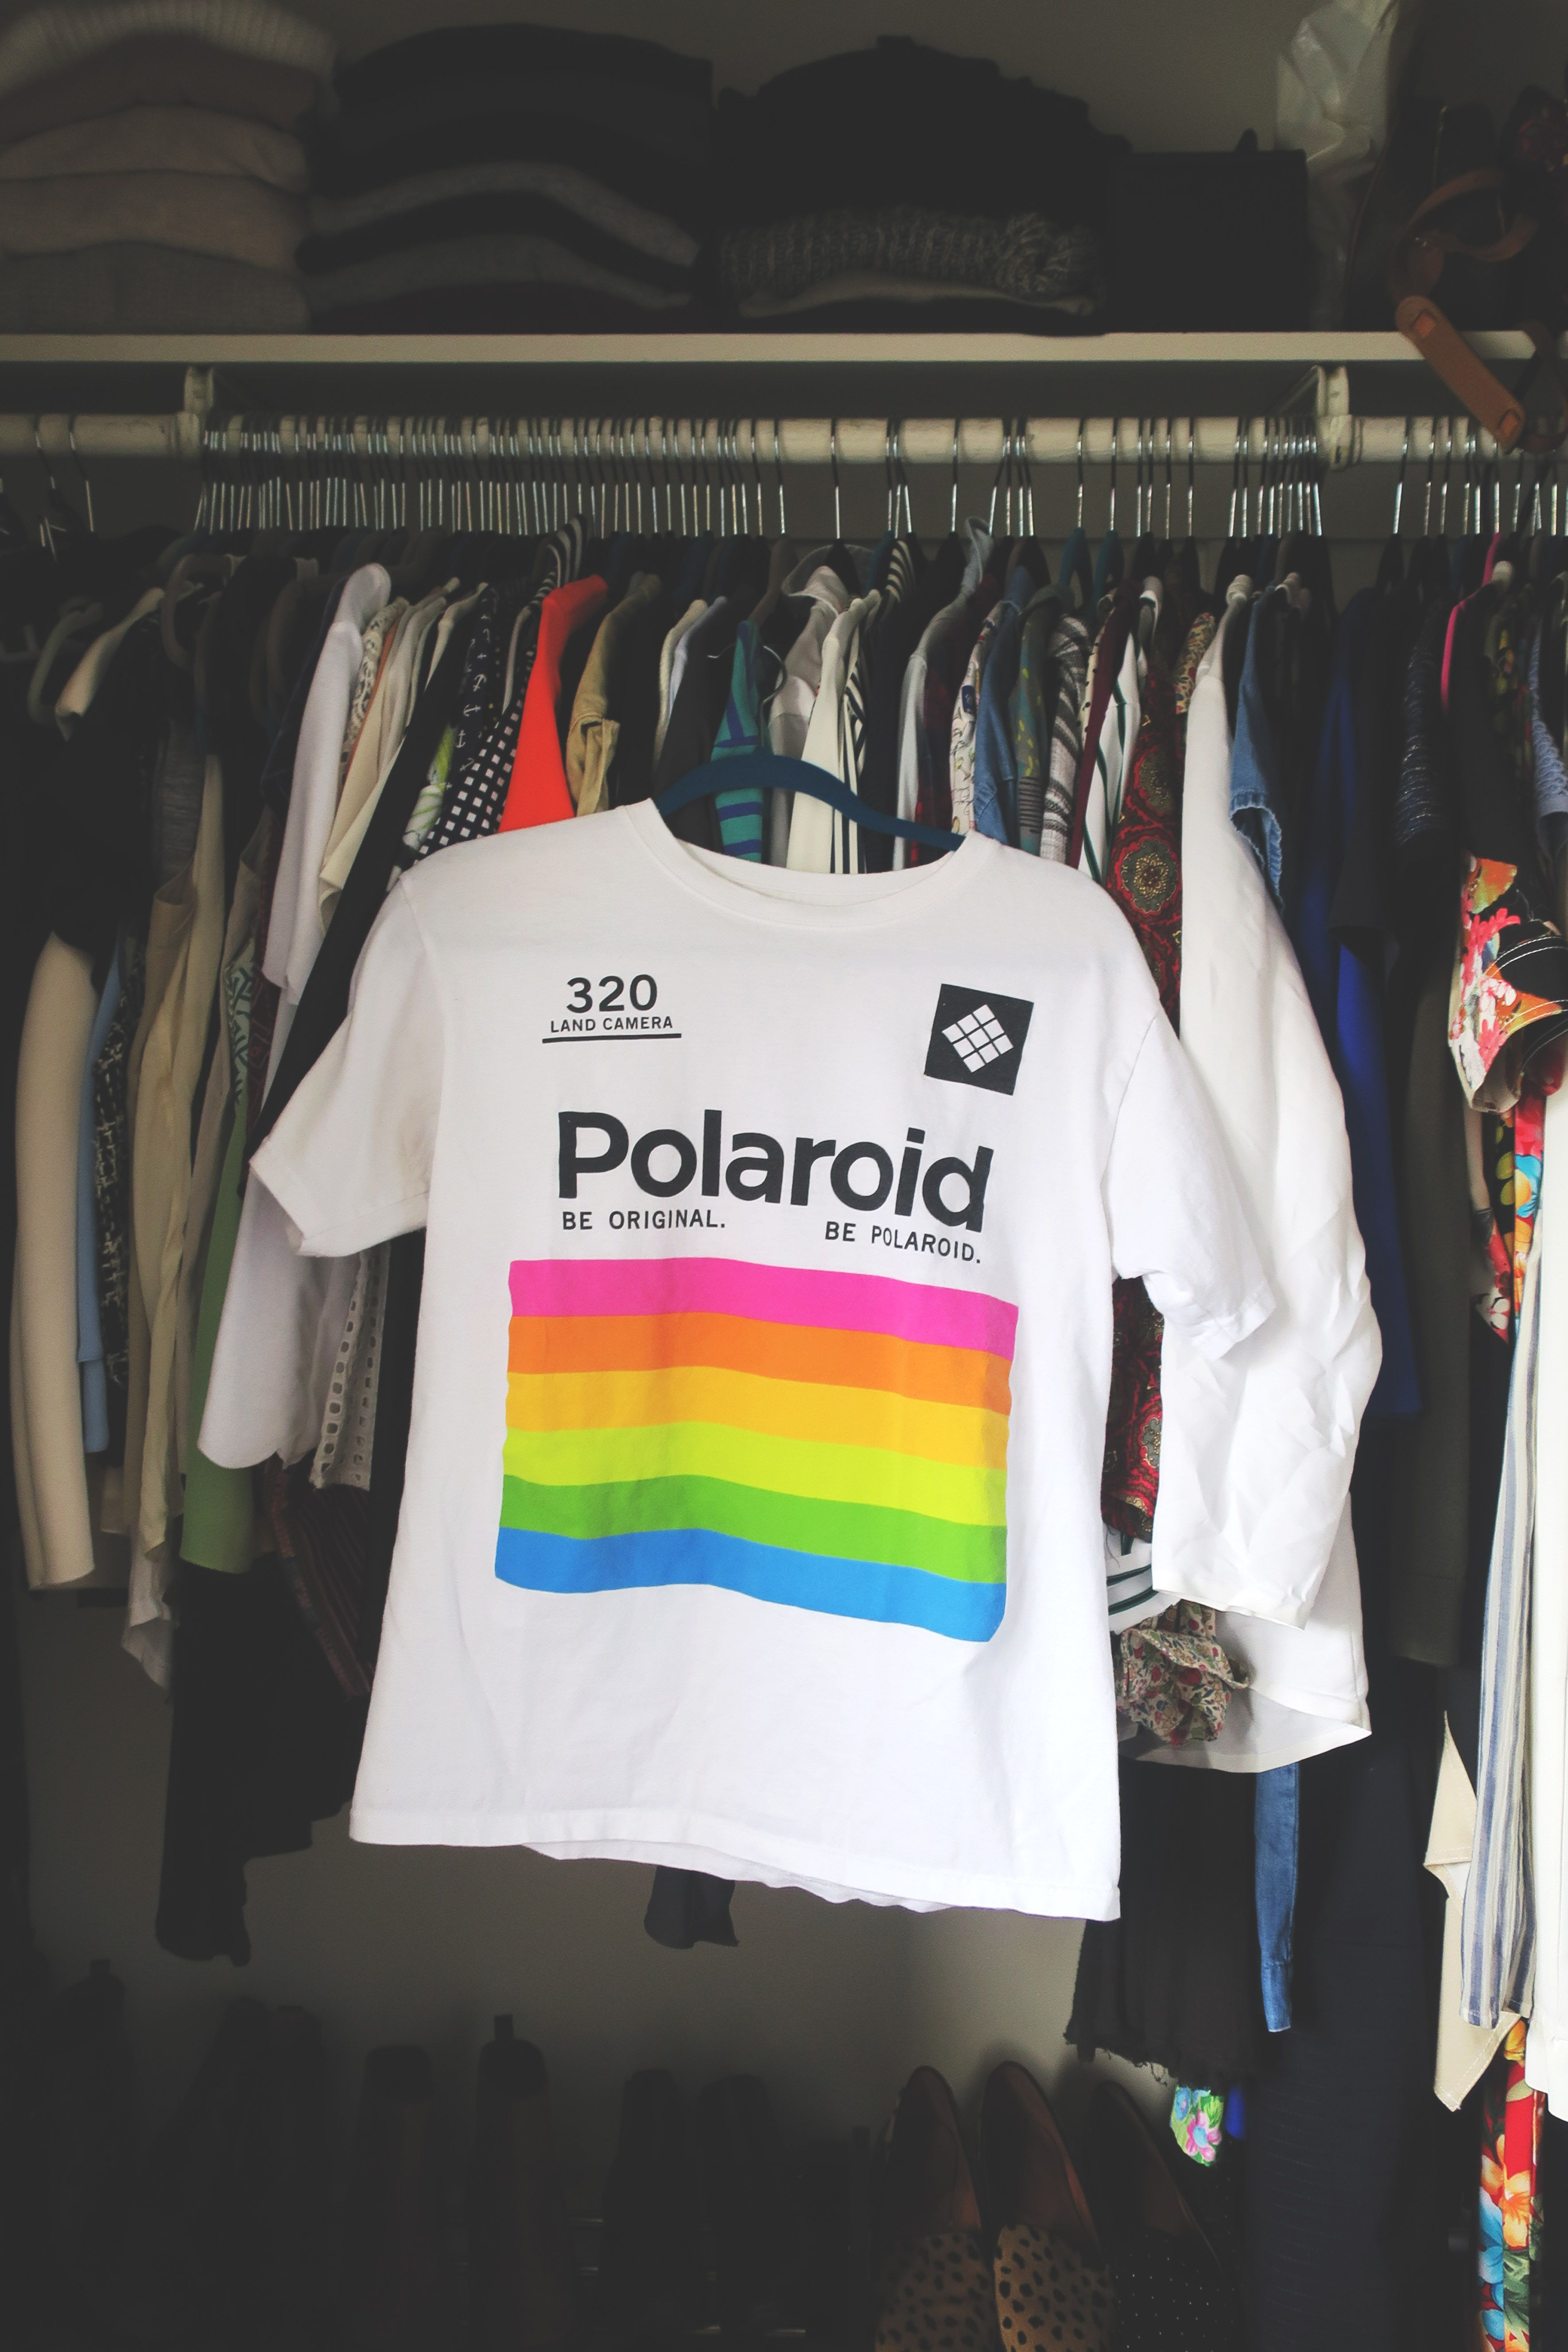 b7814fd9ff53a9 The Polaroid Land Camera 320 tee   Style   Polaroid, Tees, Outfits